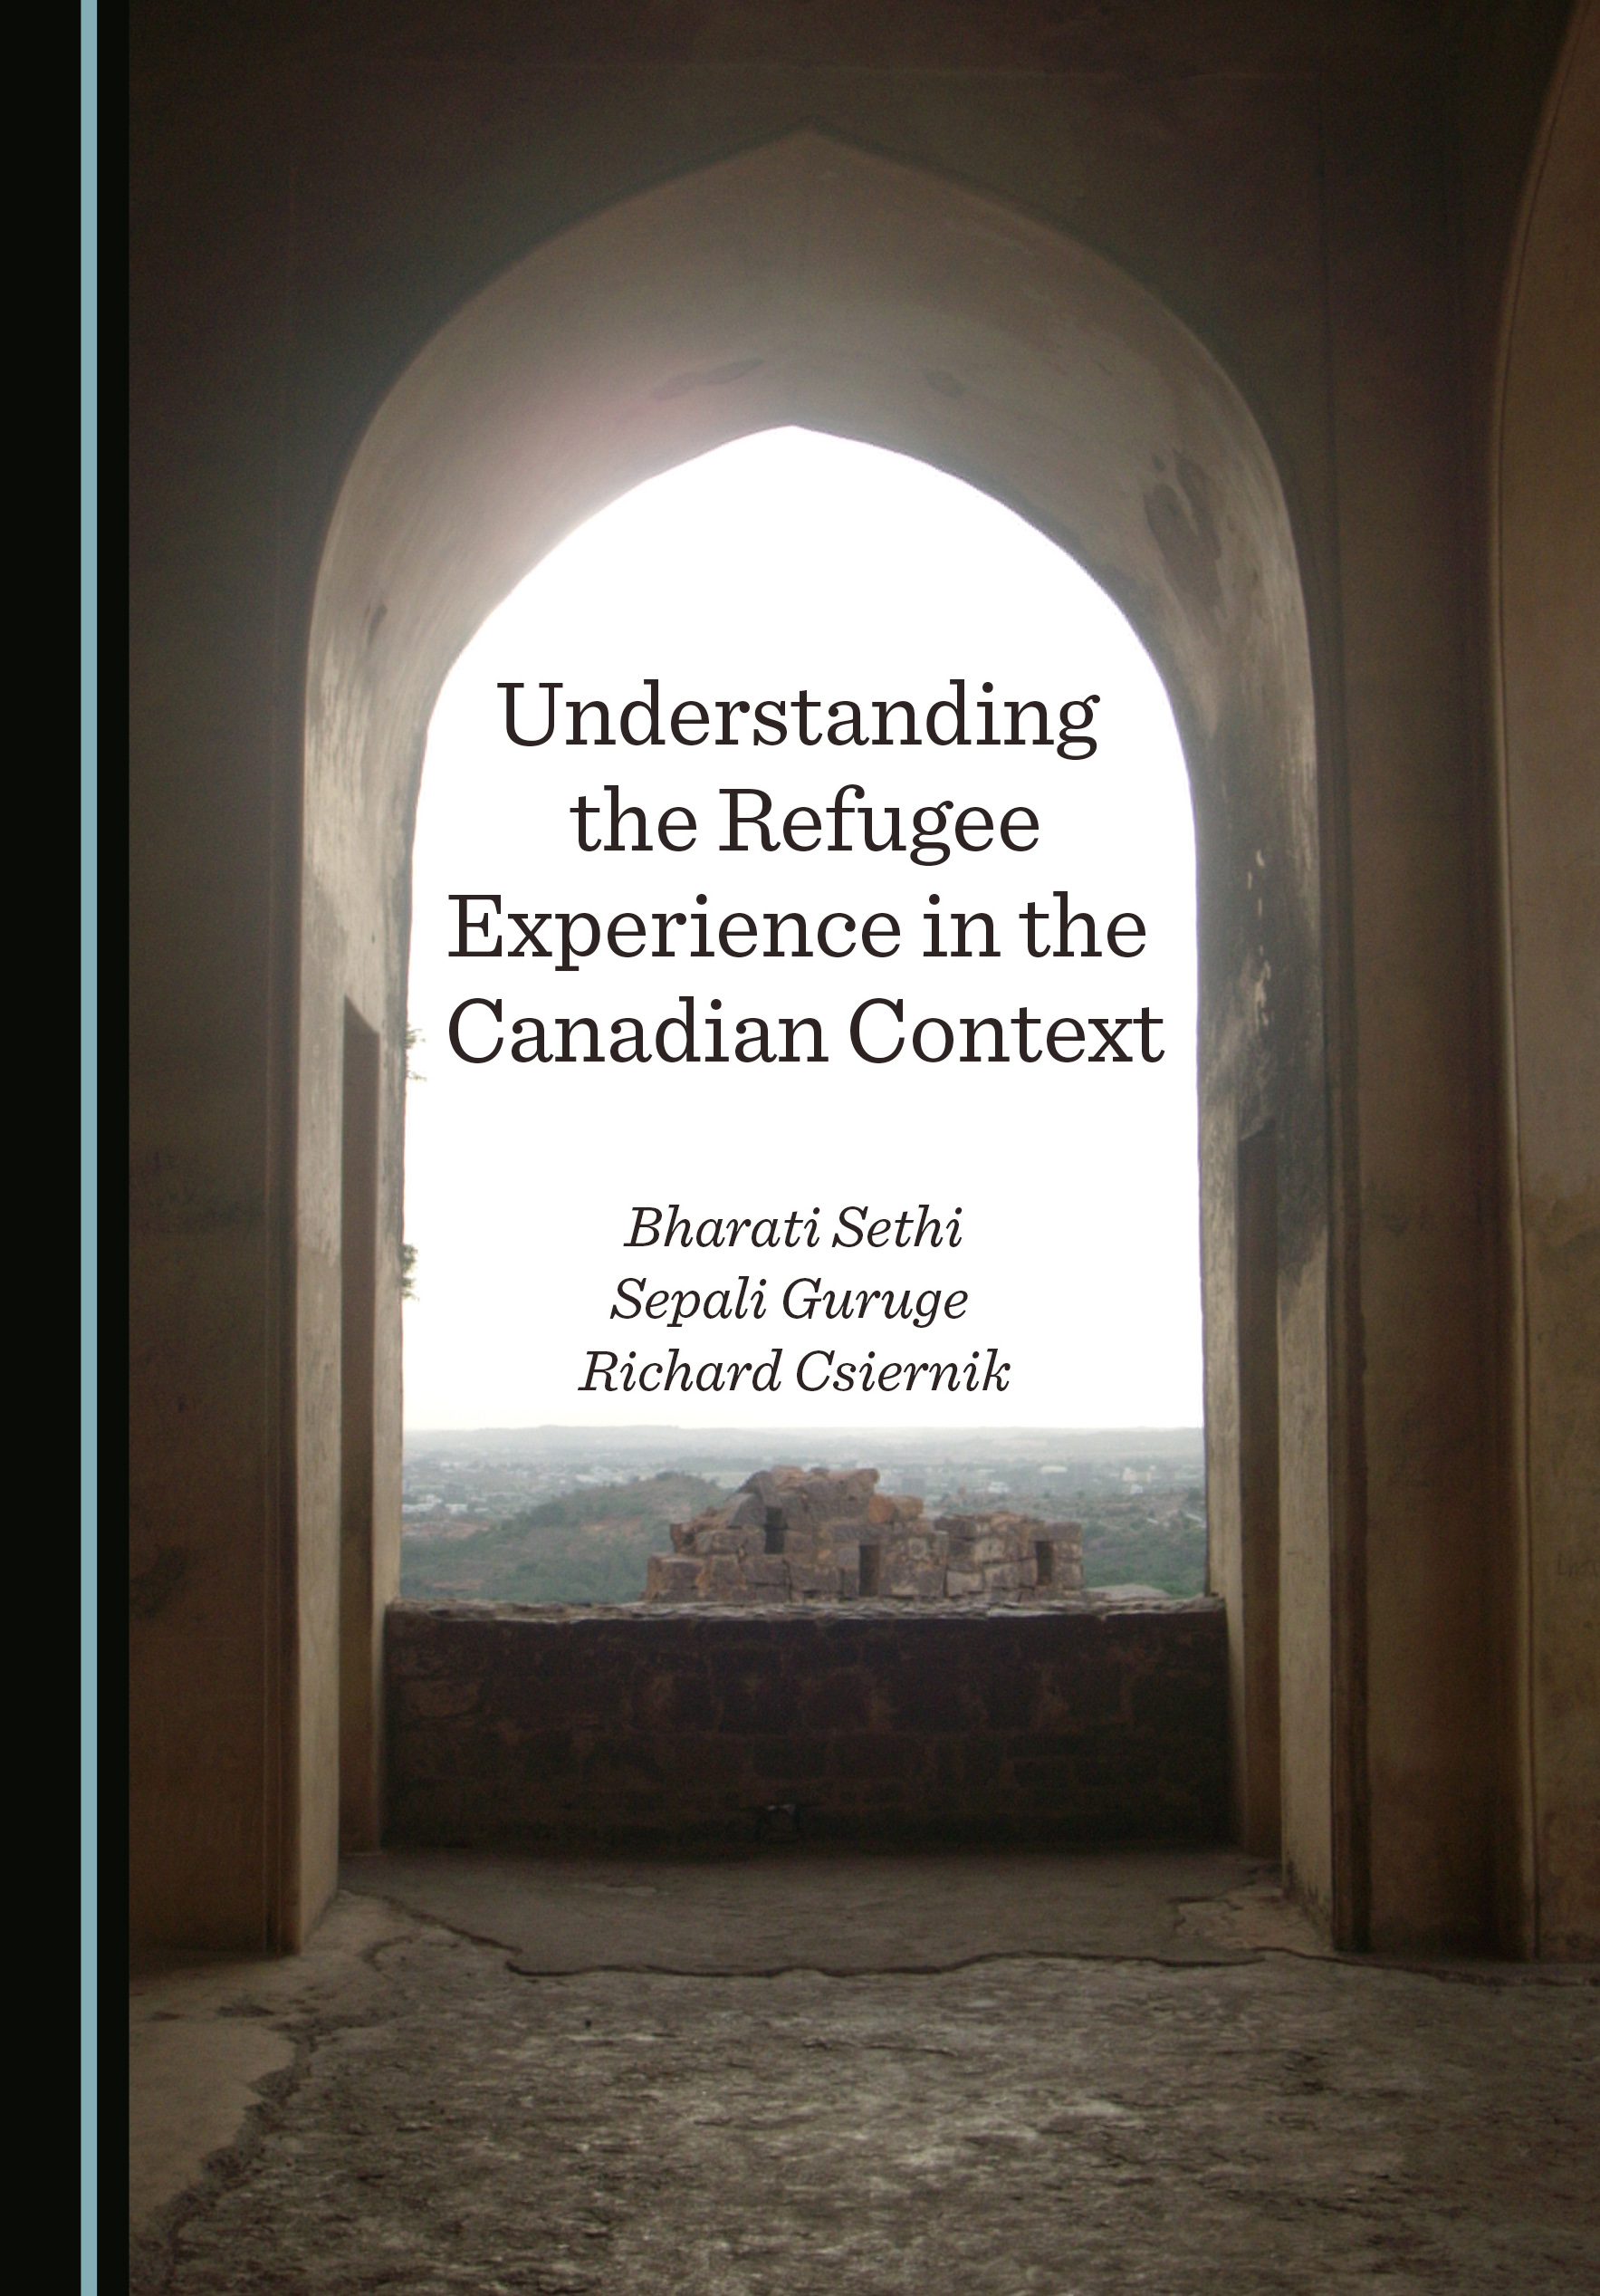 Understanding the Refugee Experience in the Canadian Context